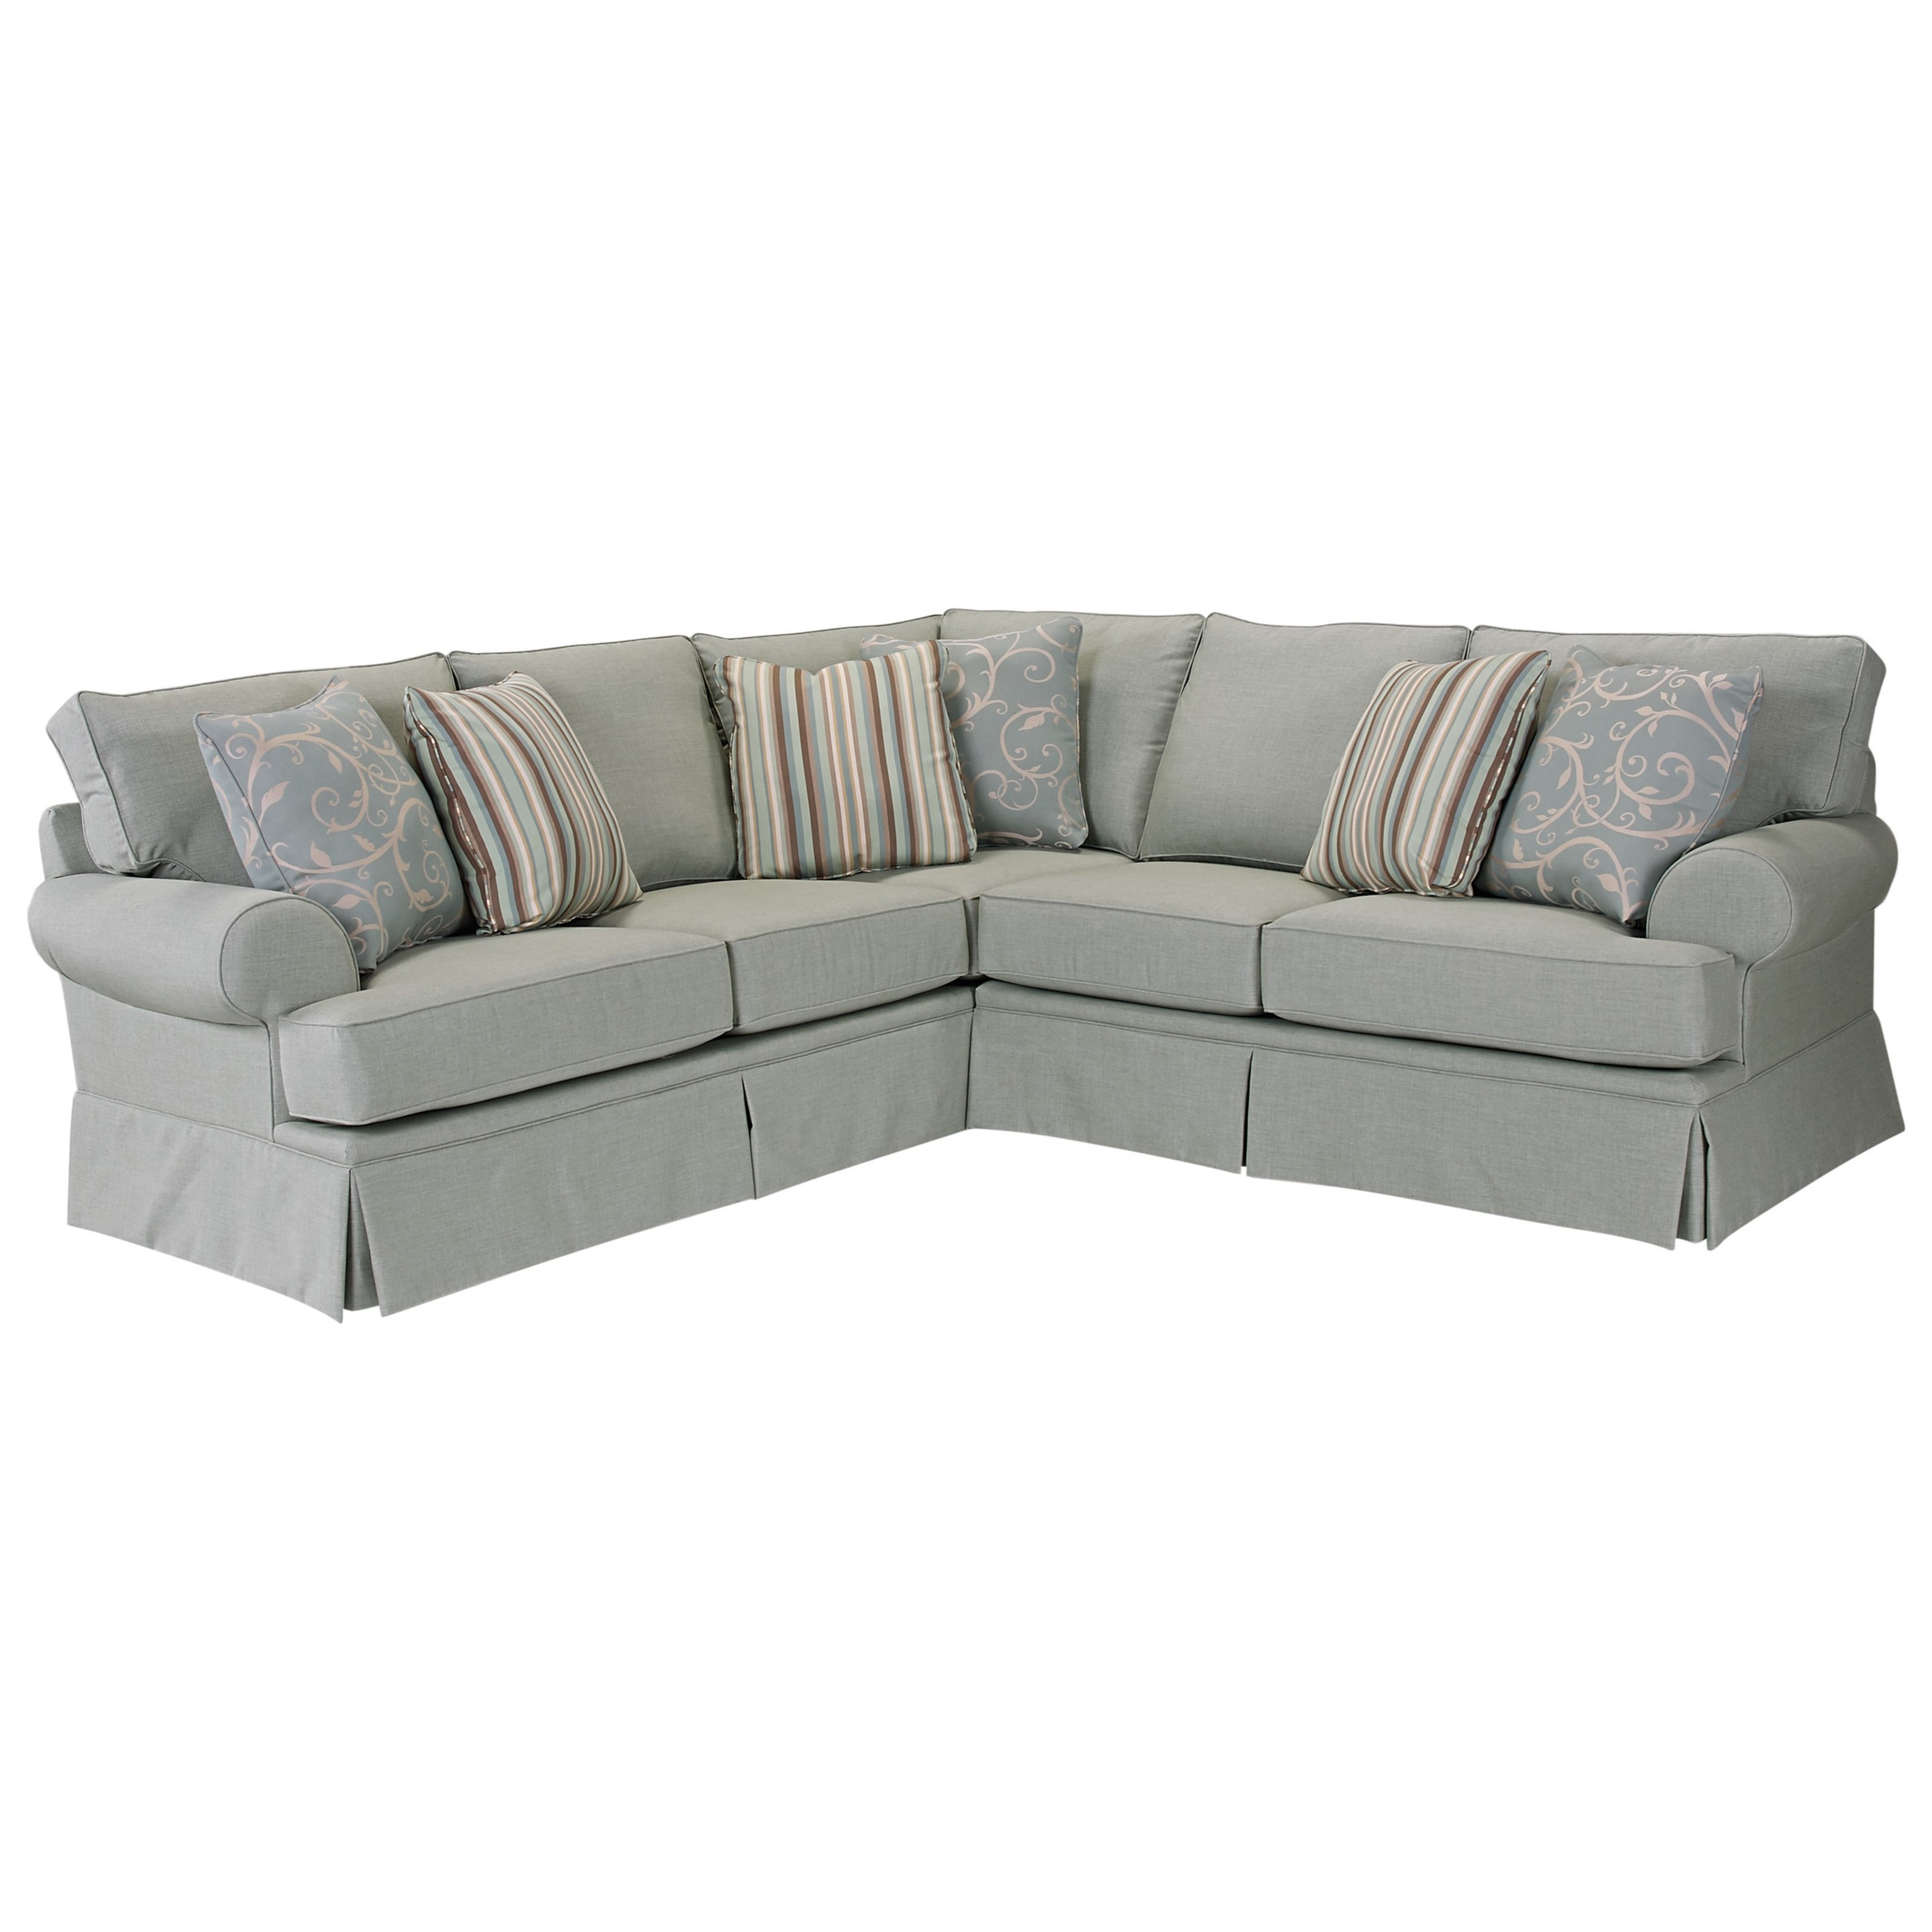 Superbe Broyhill Furniture Emily Transitional Sectional   Item Number:  S6263 1+4 40430